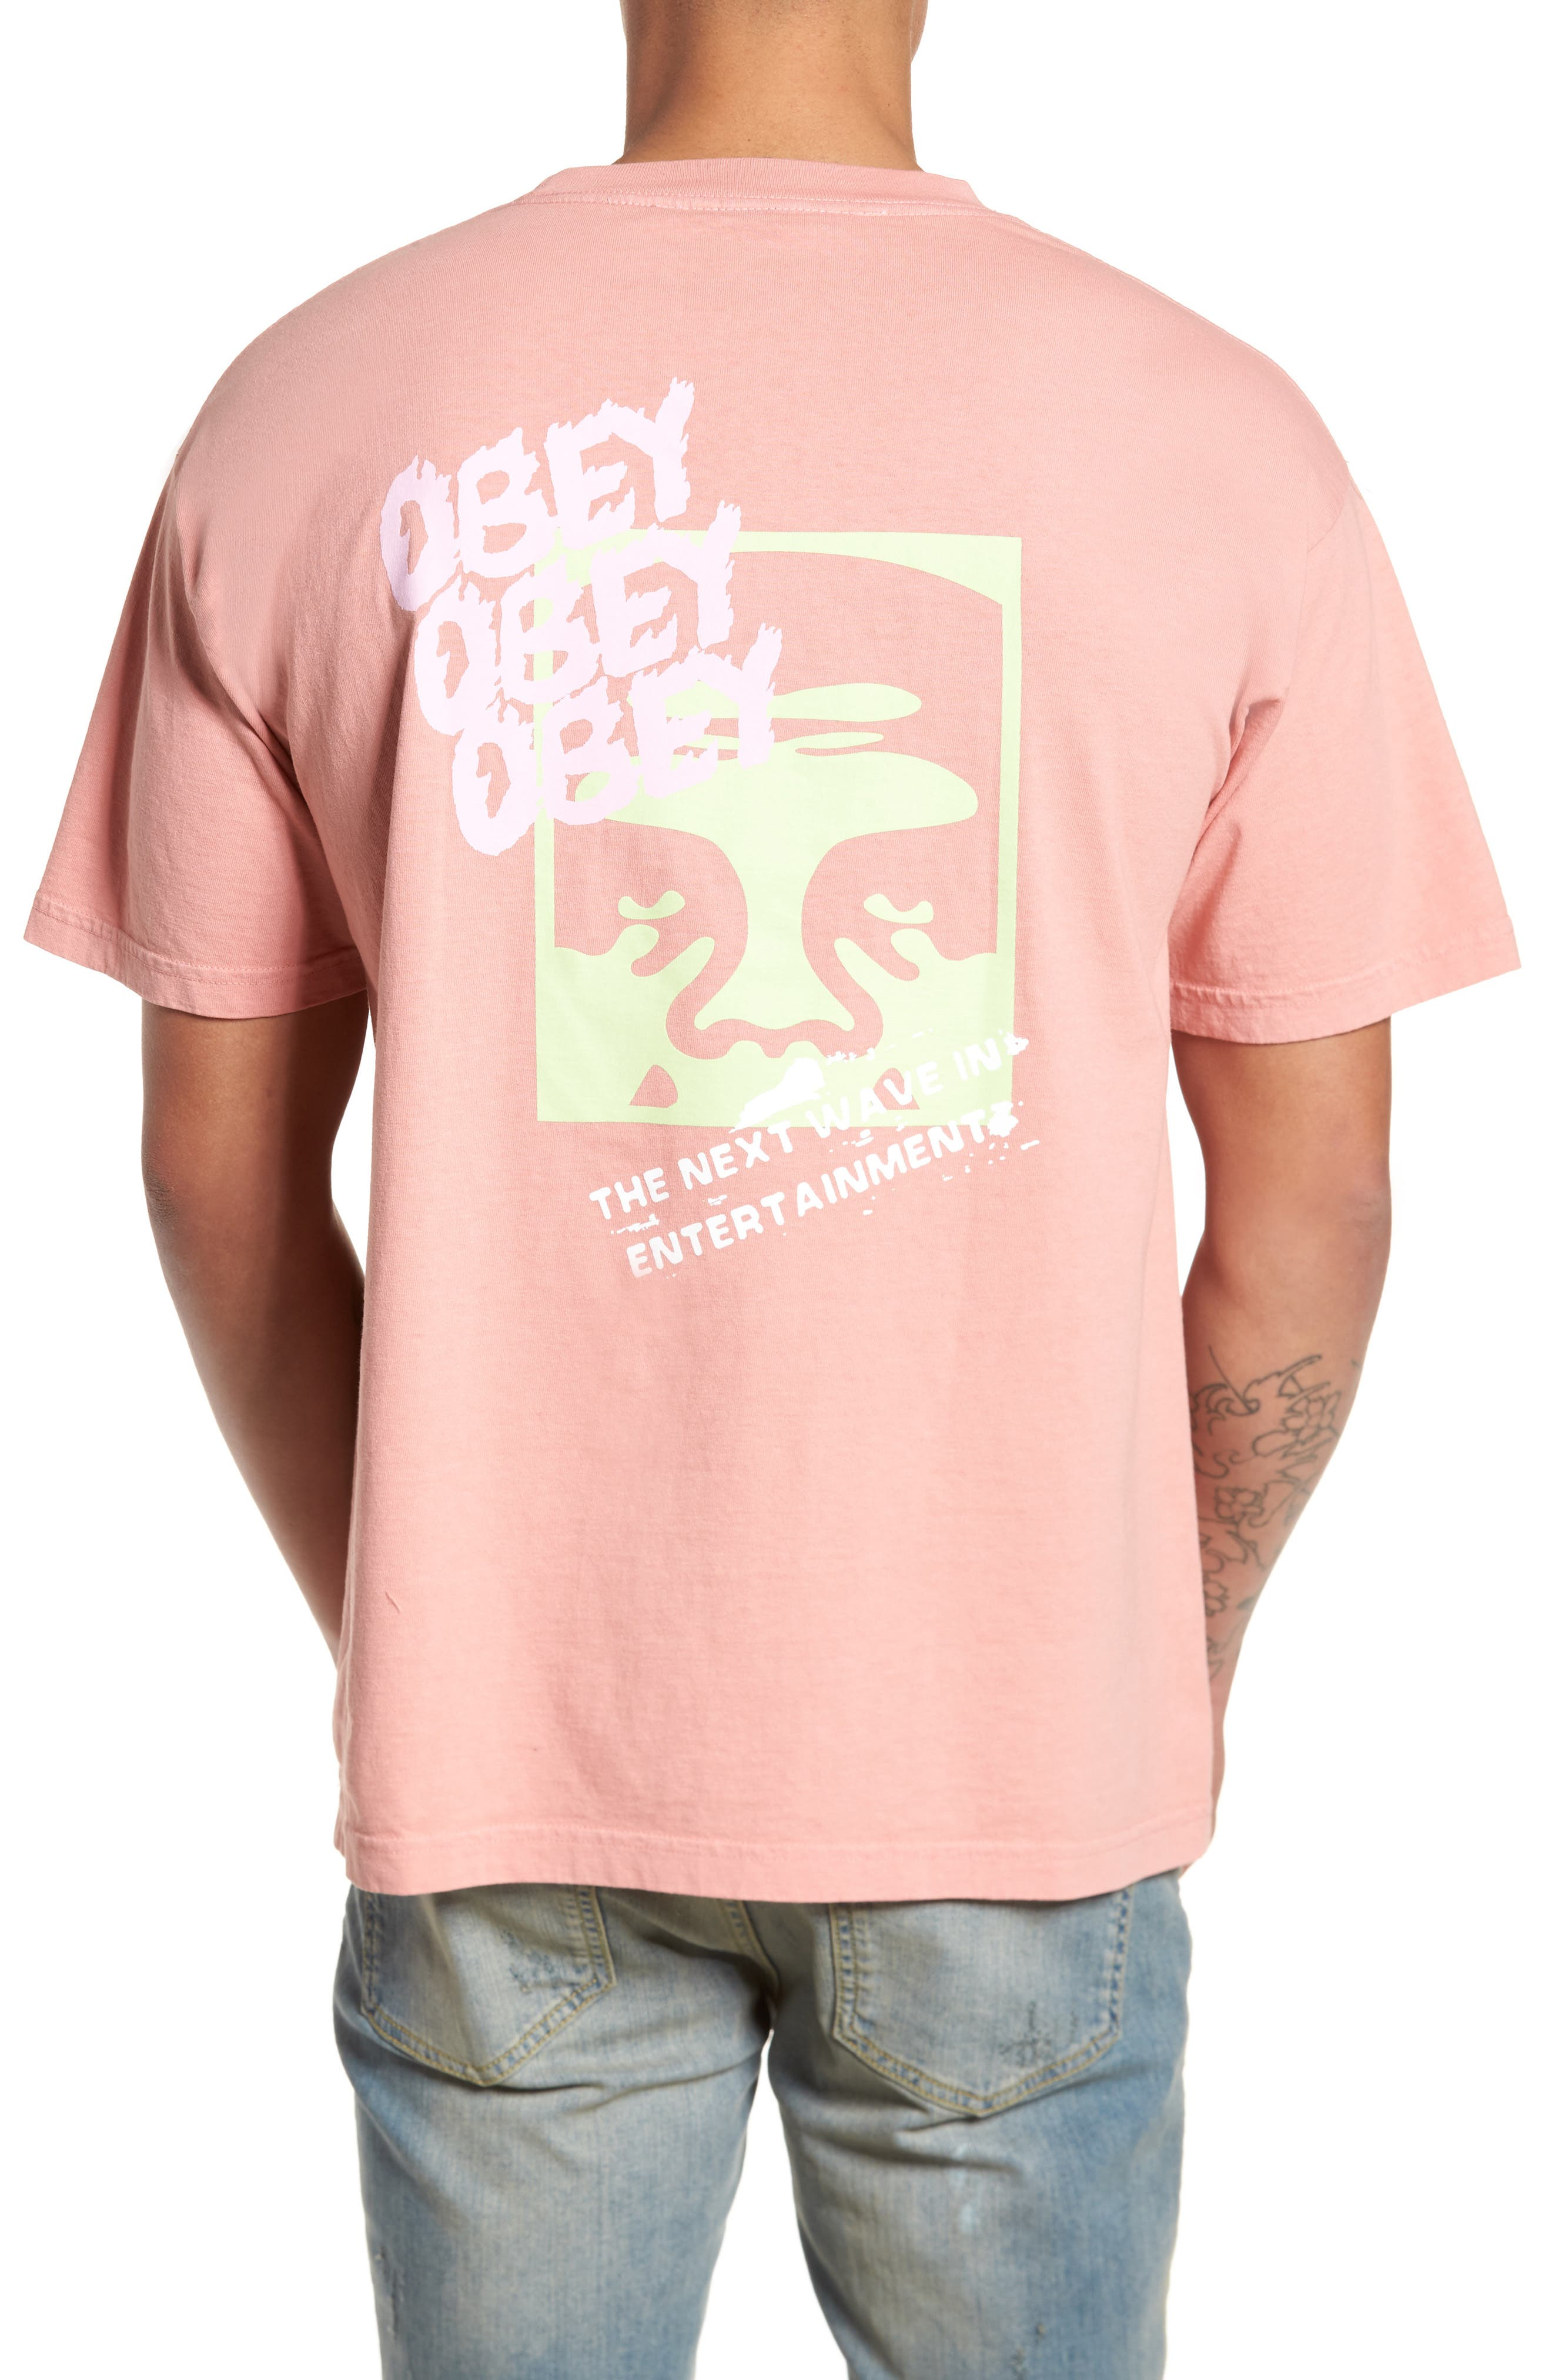 The Next Wave Boxy T-Shirt,                             Alternate thumbnail 2, color,                             950